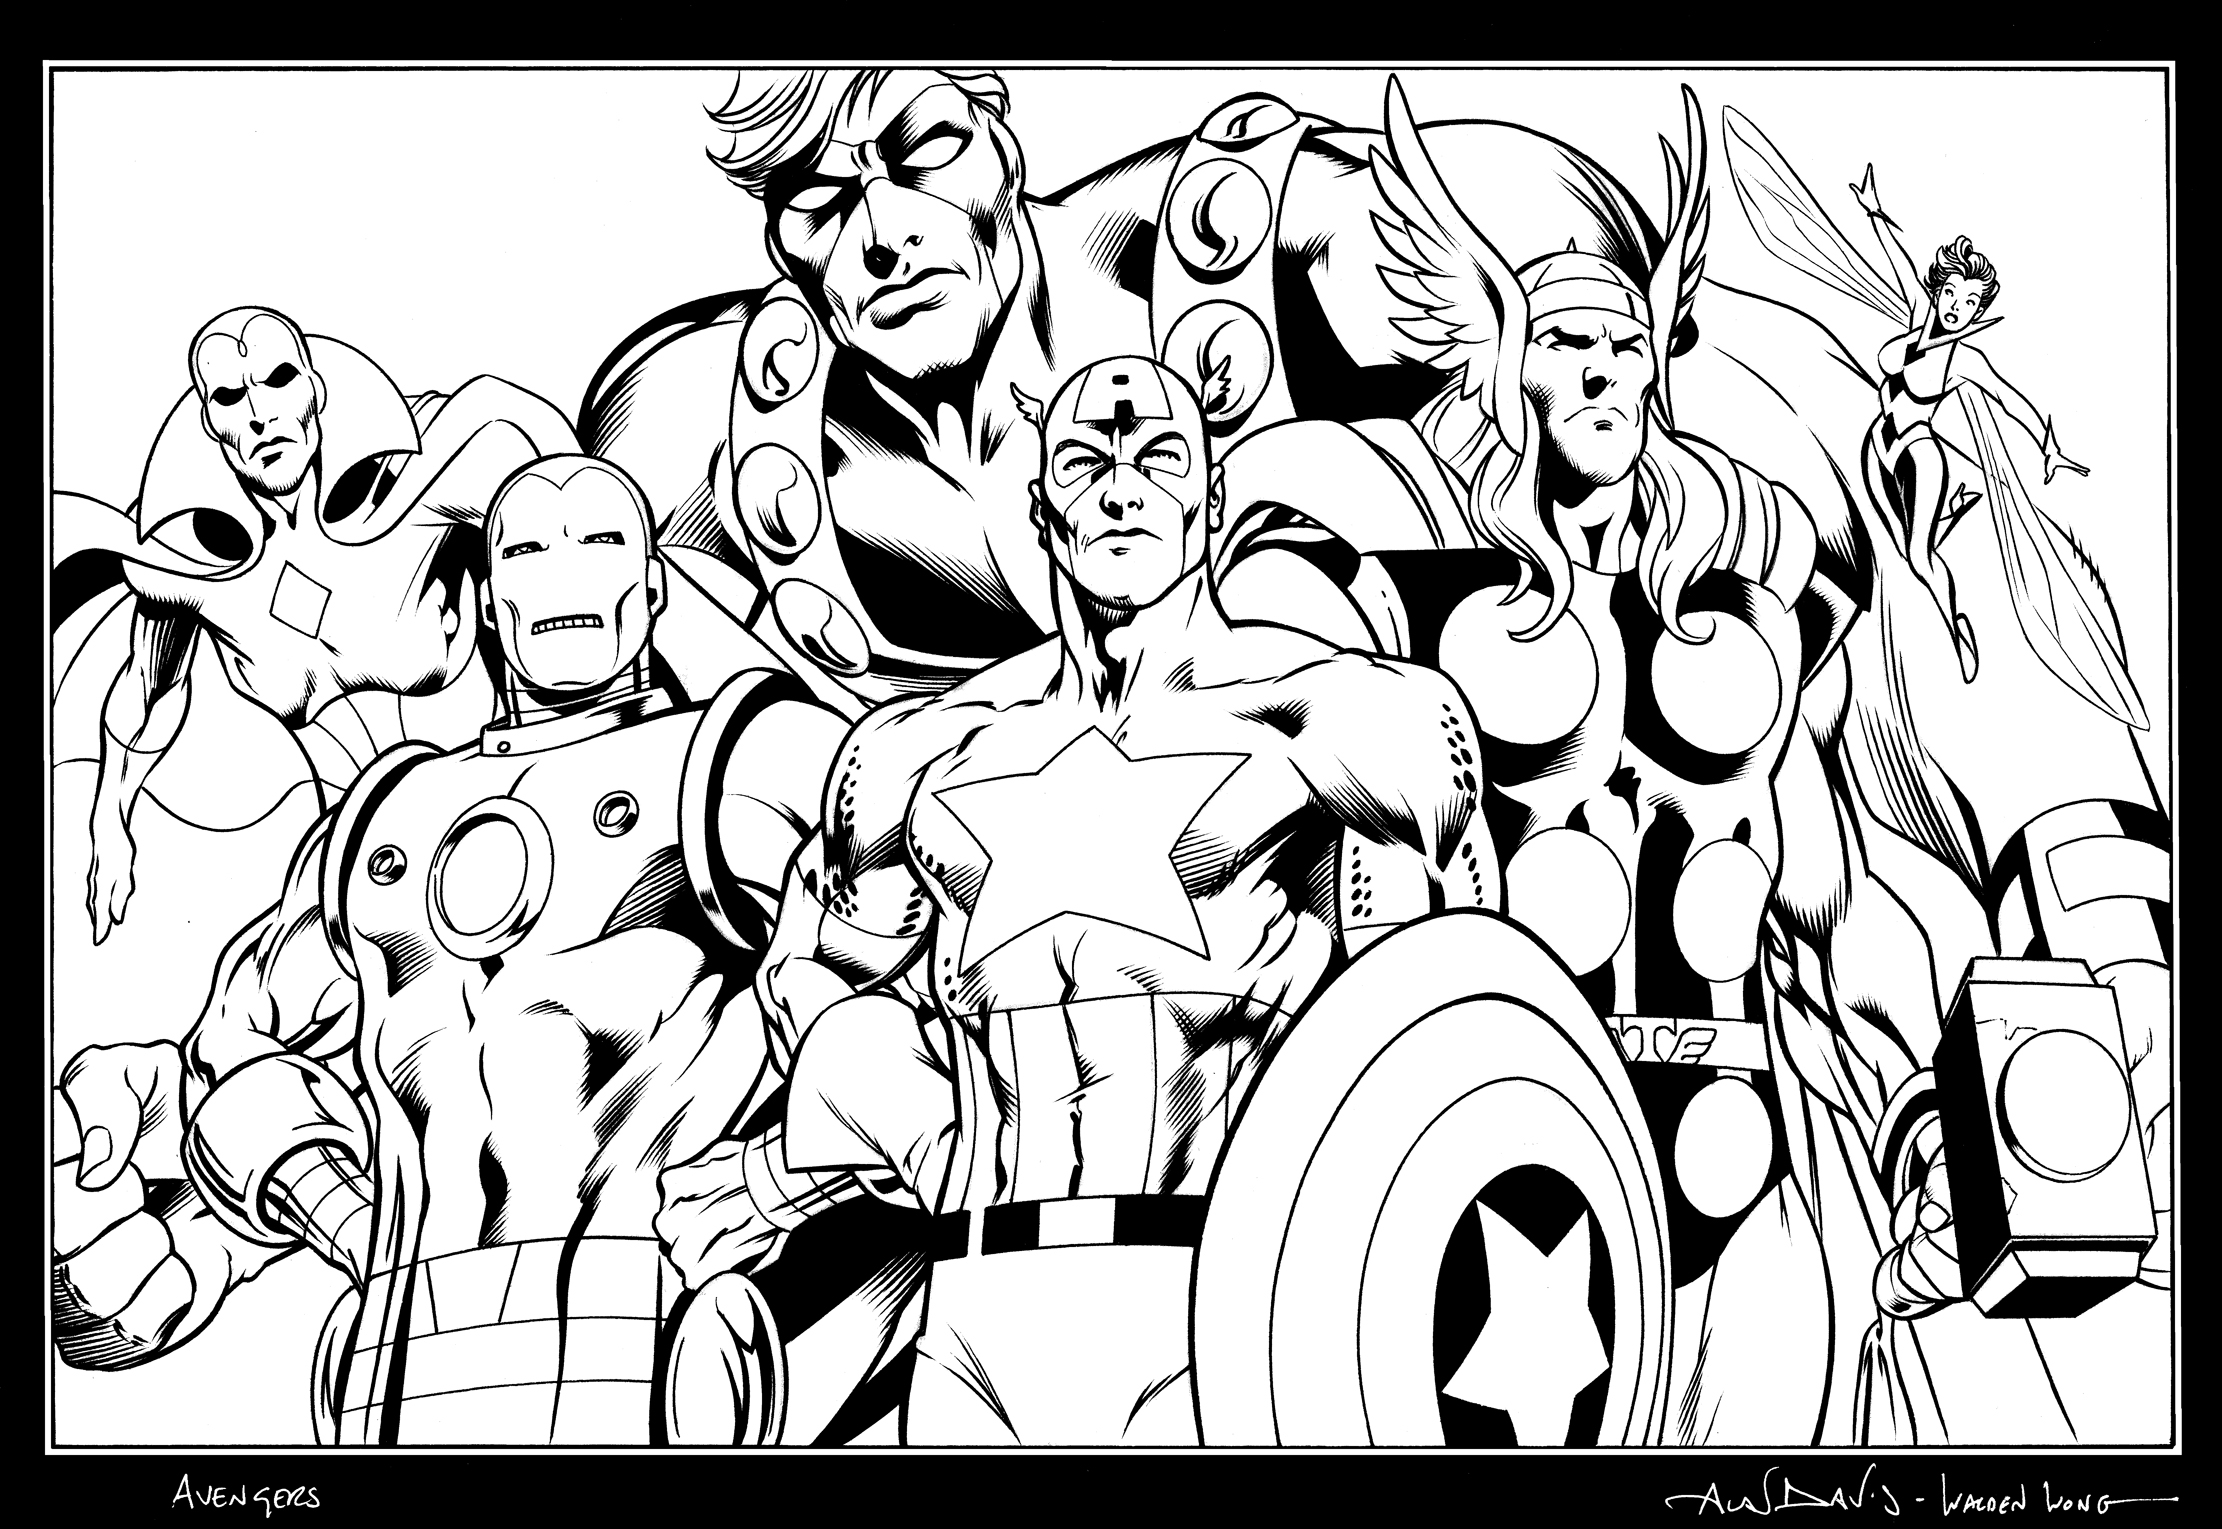 avengers coloring sheet avengers coloring pages to download and print for free sheet coloring avengers